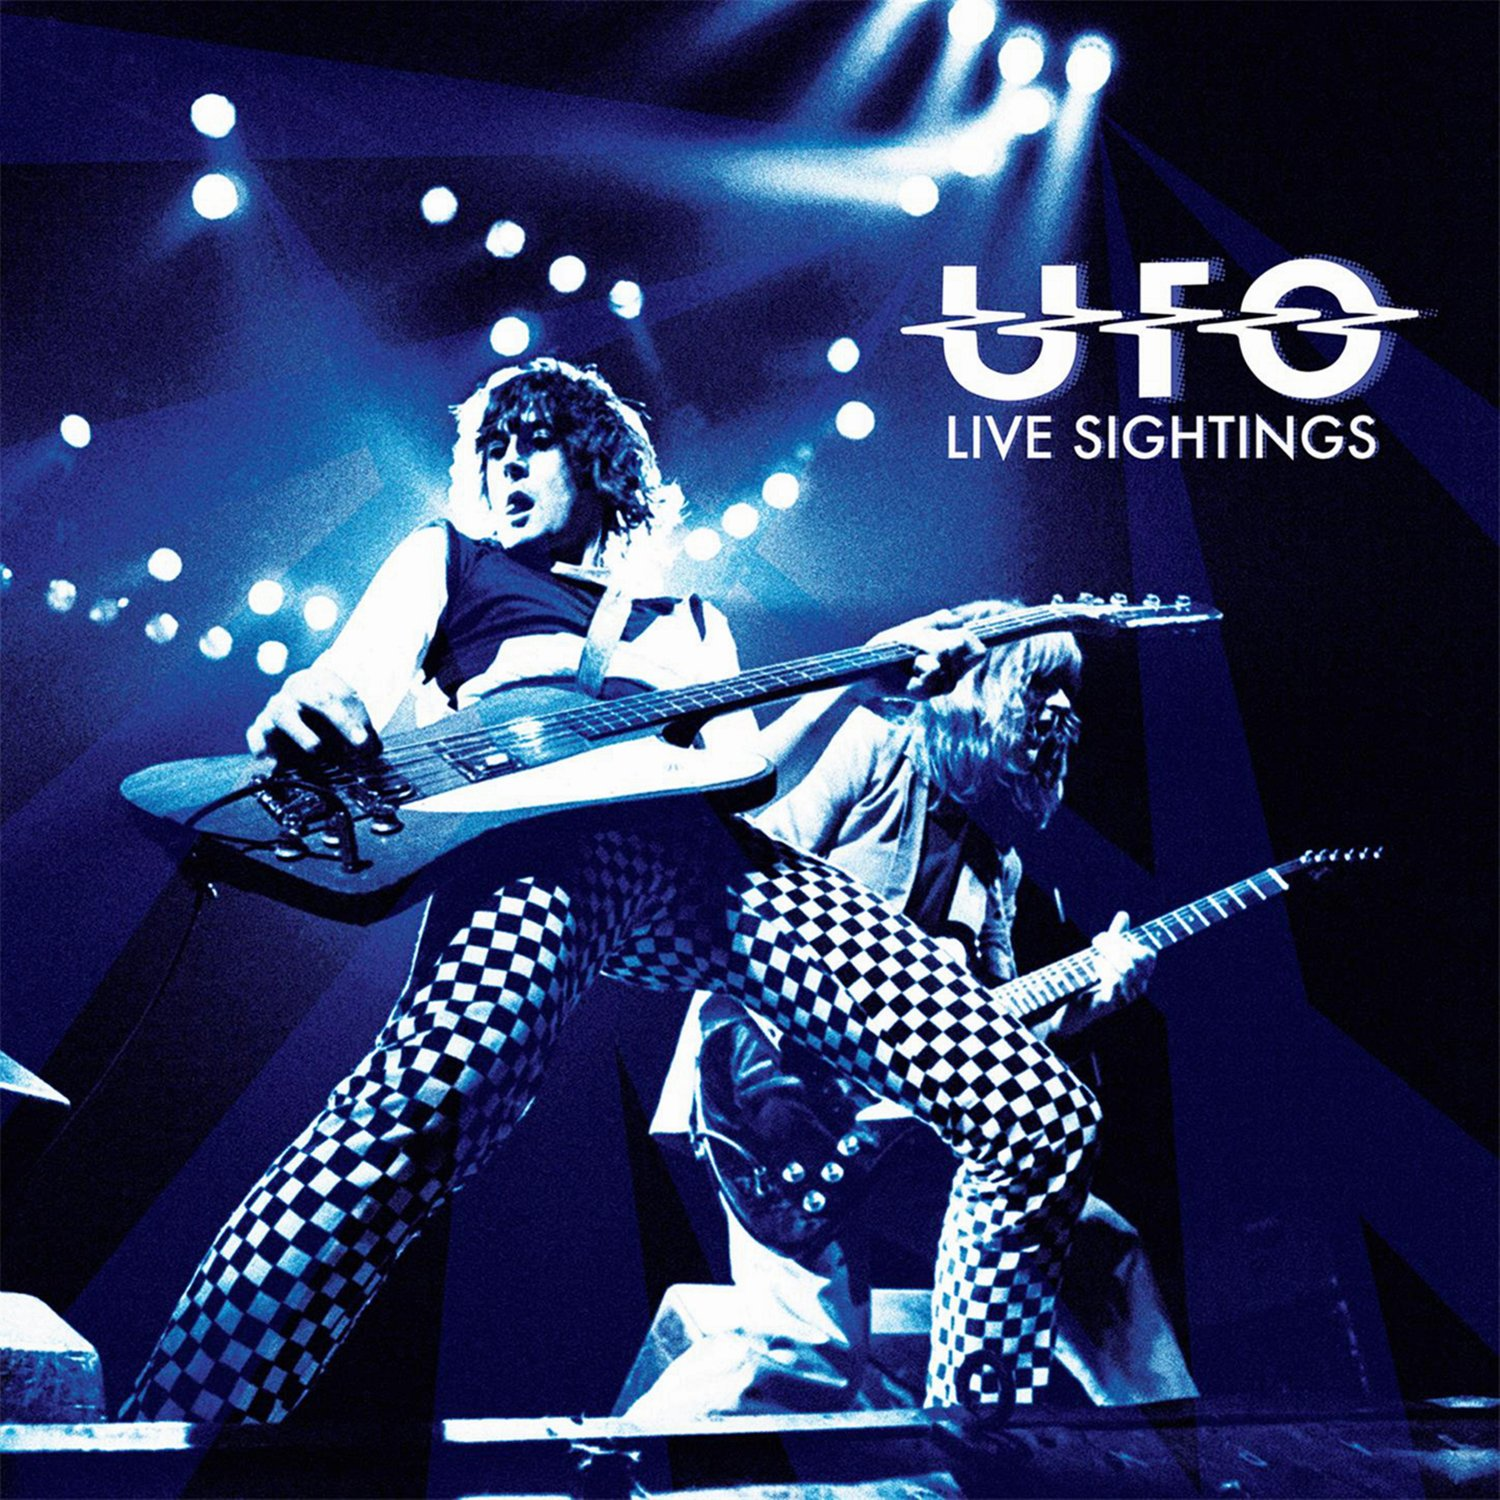 UFO Live Sightings BANNER Huge 4X4 Ft Fabric Poster Tapestry Flag Print album cover art